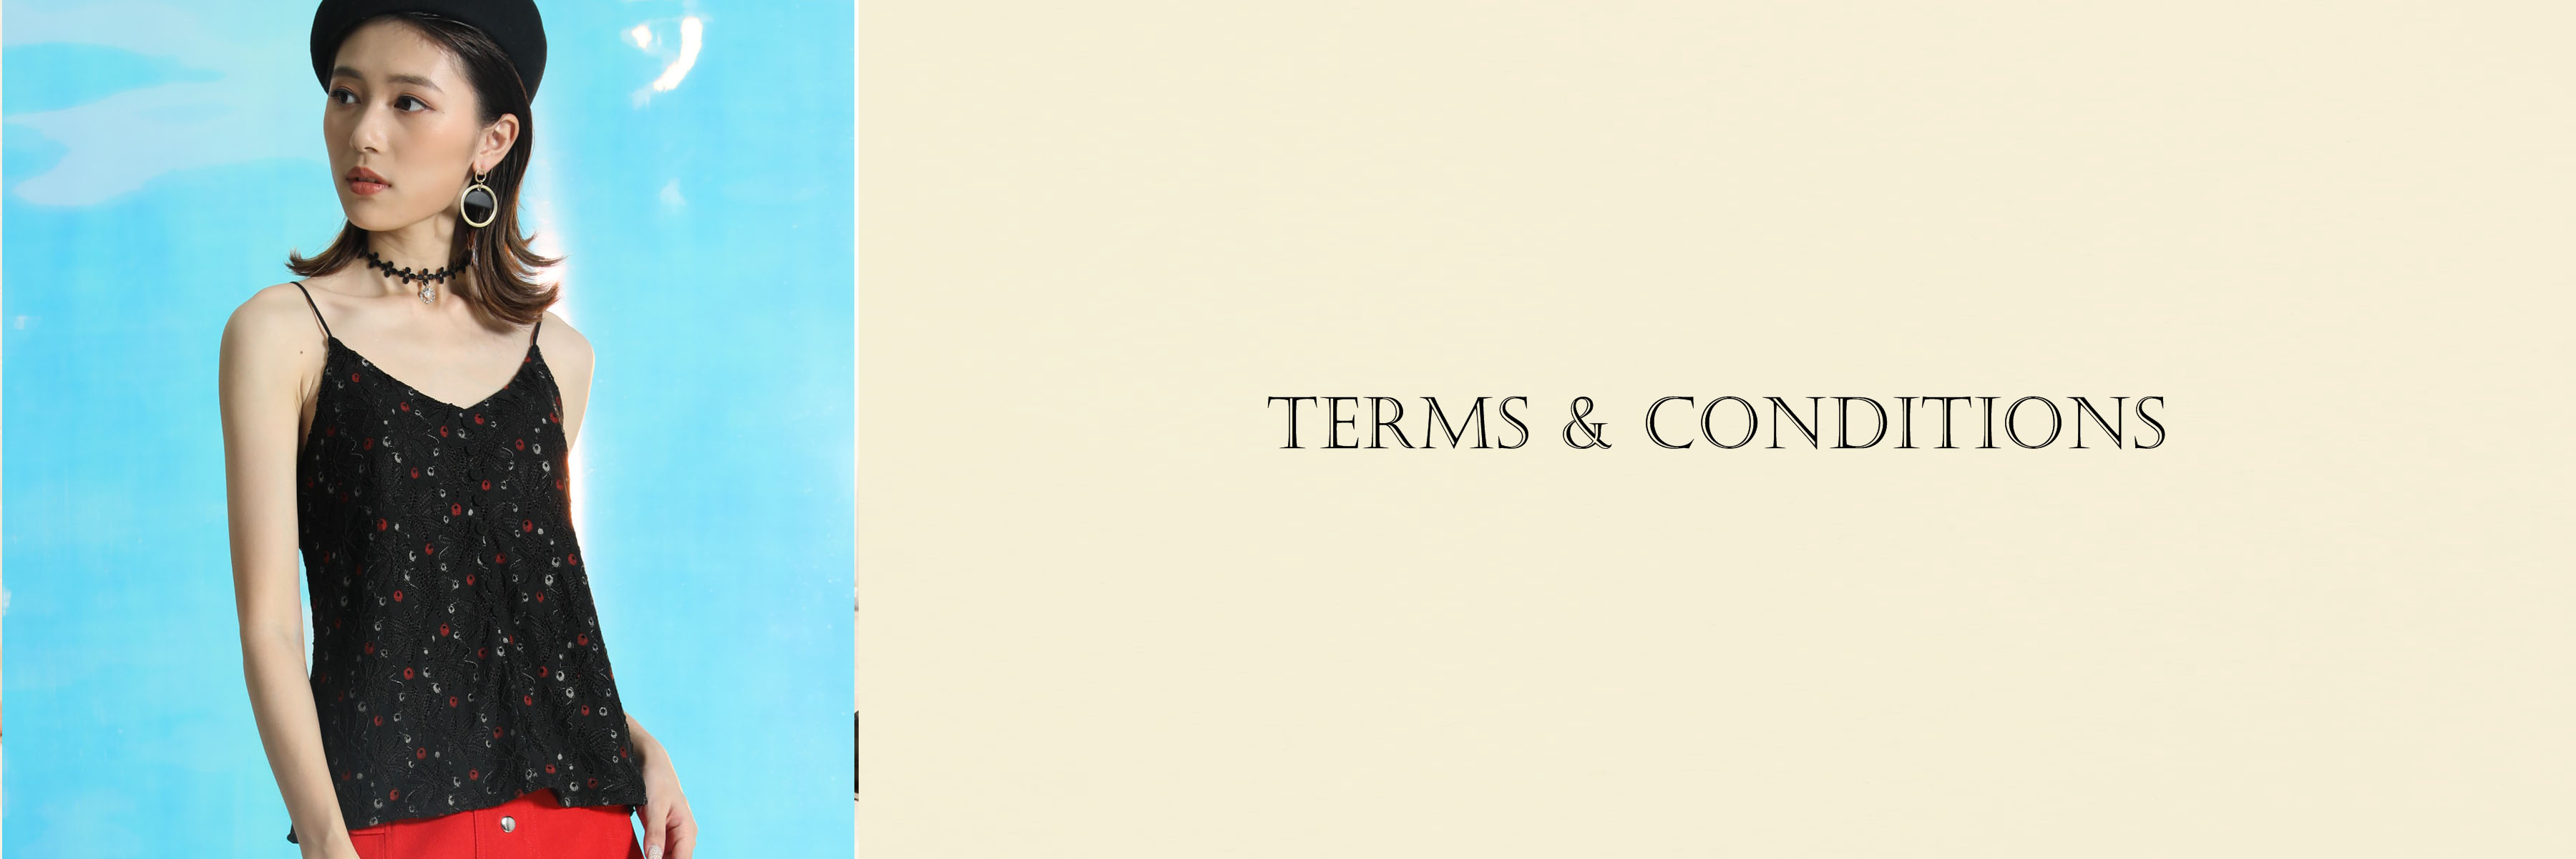 14 Terms And Conditions